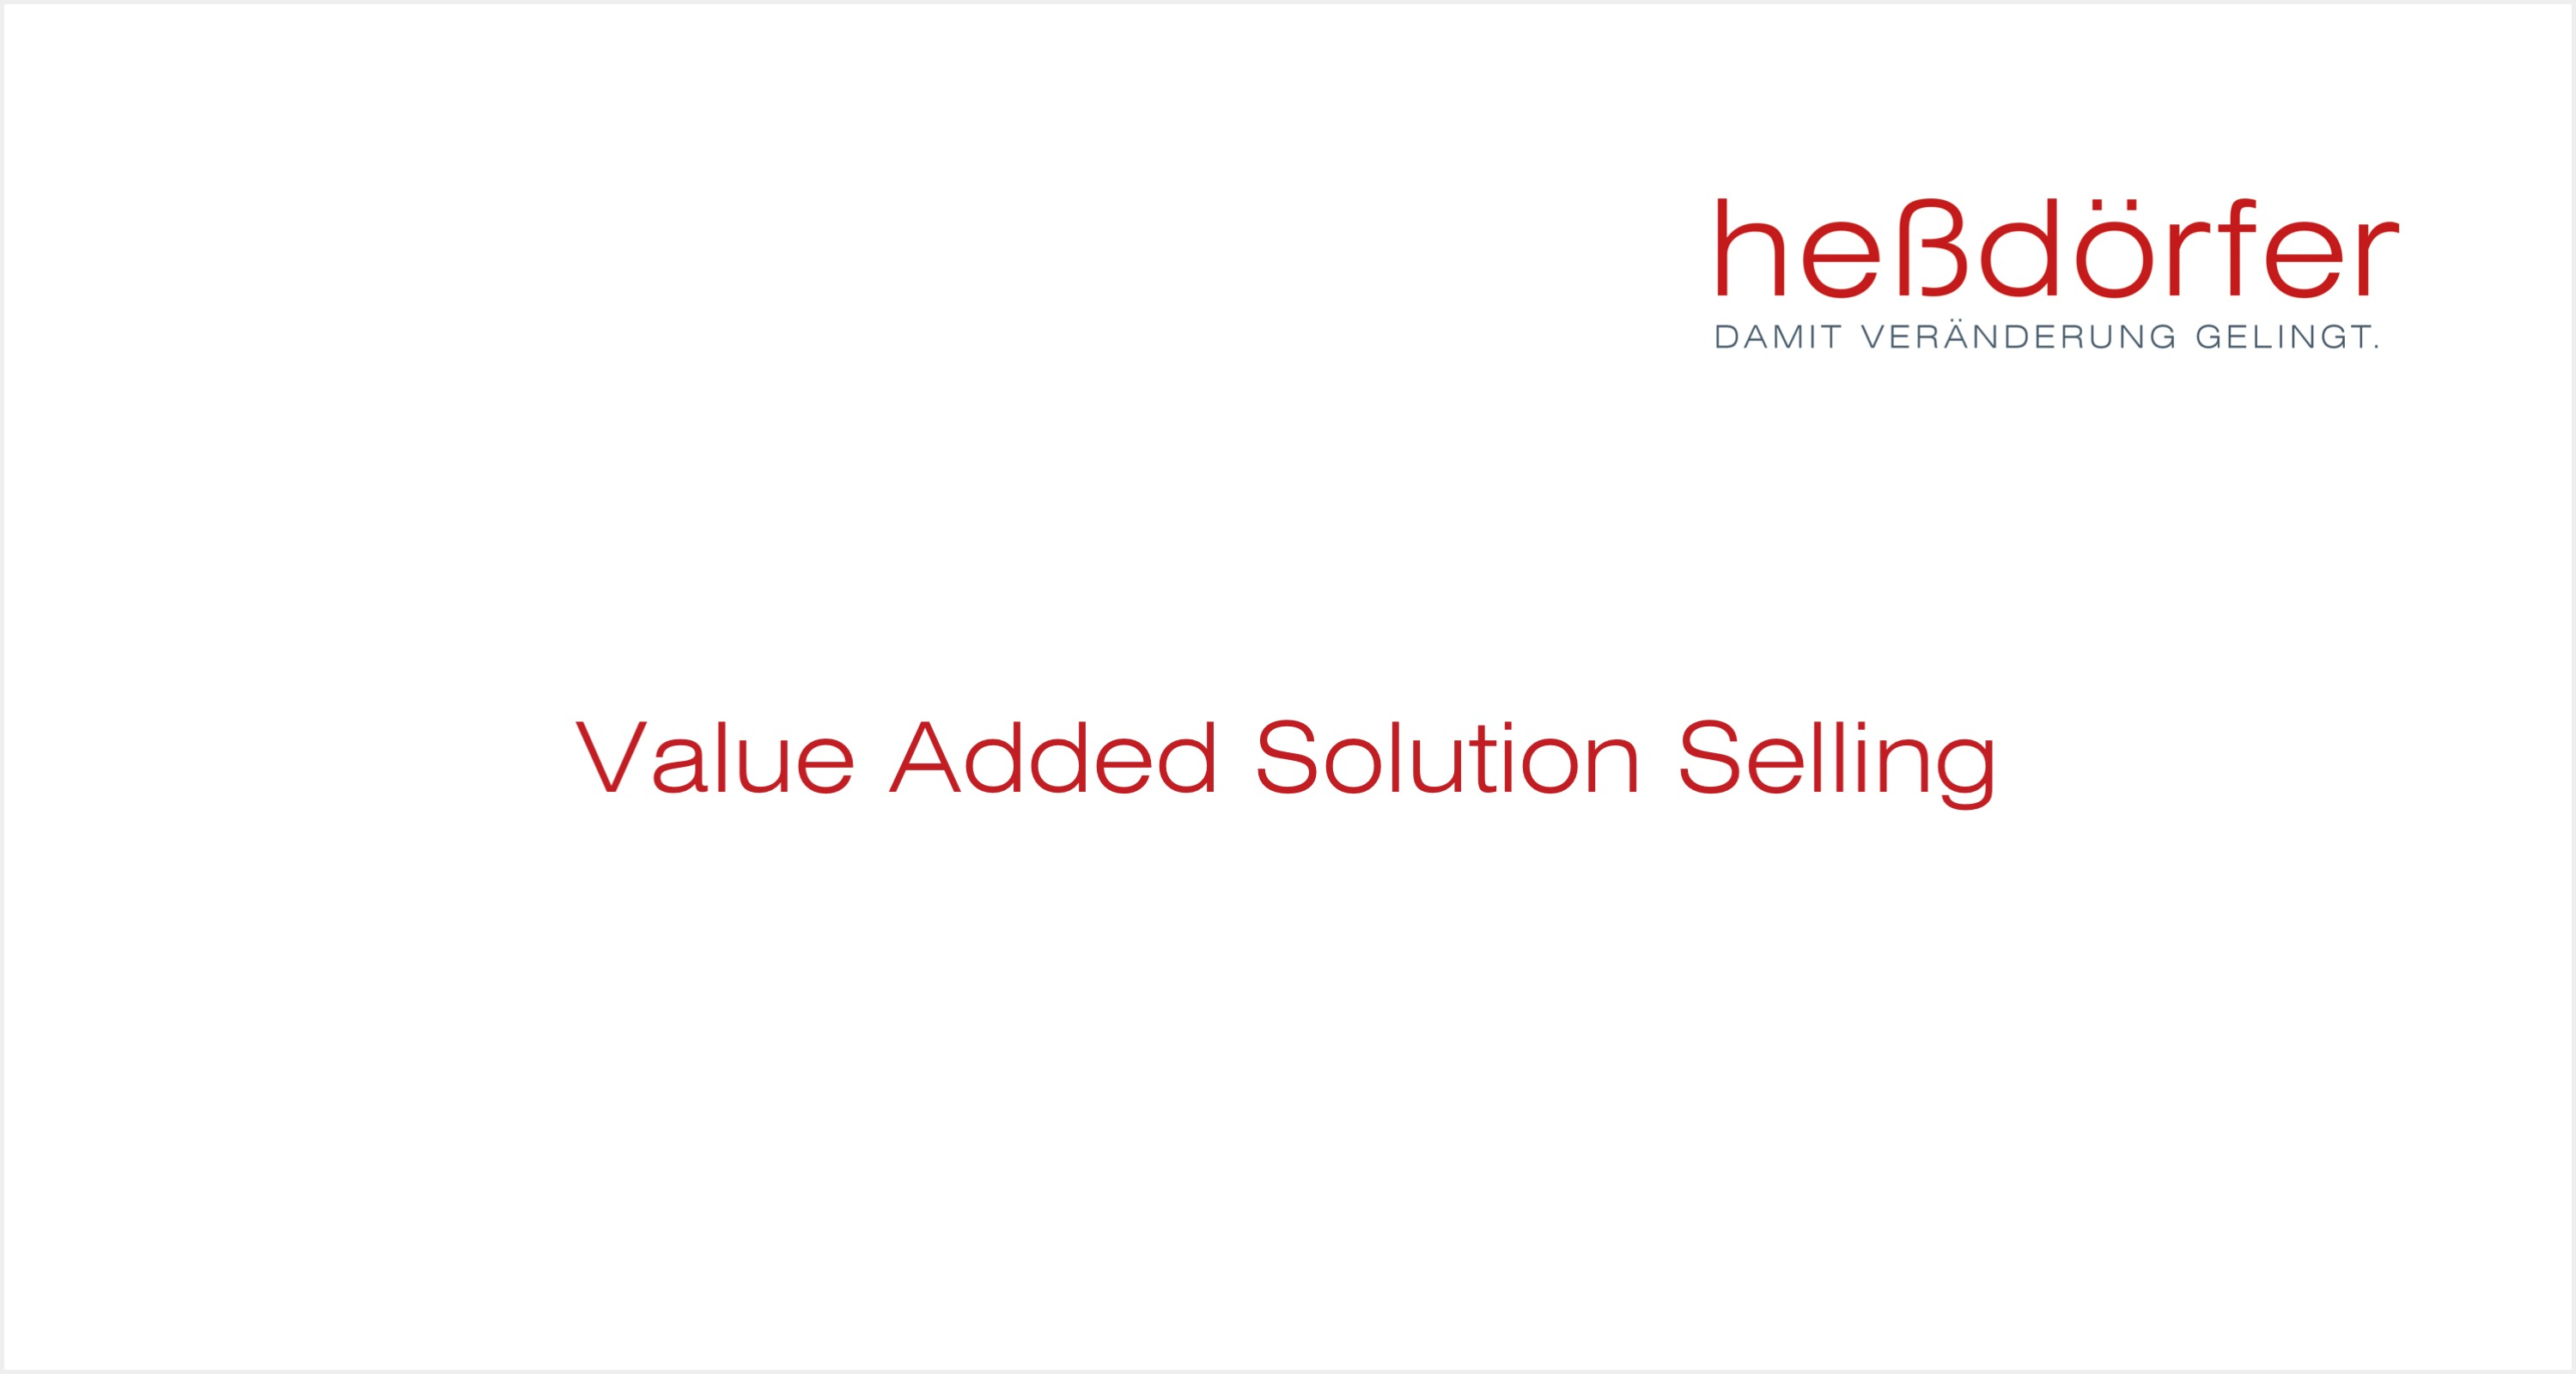 Value Added Solution Selling